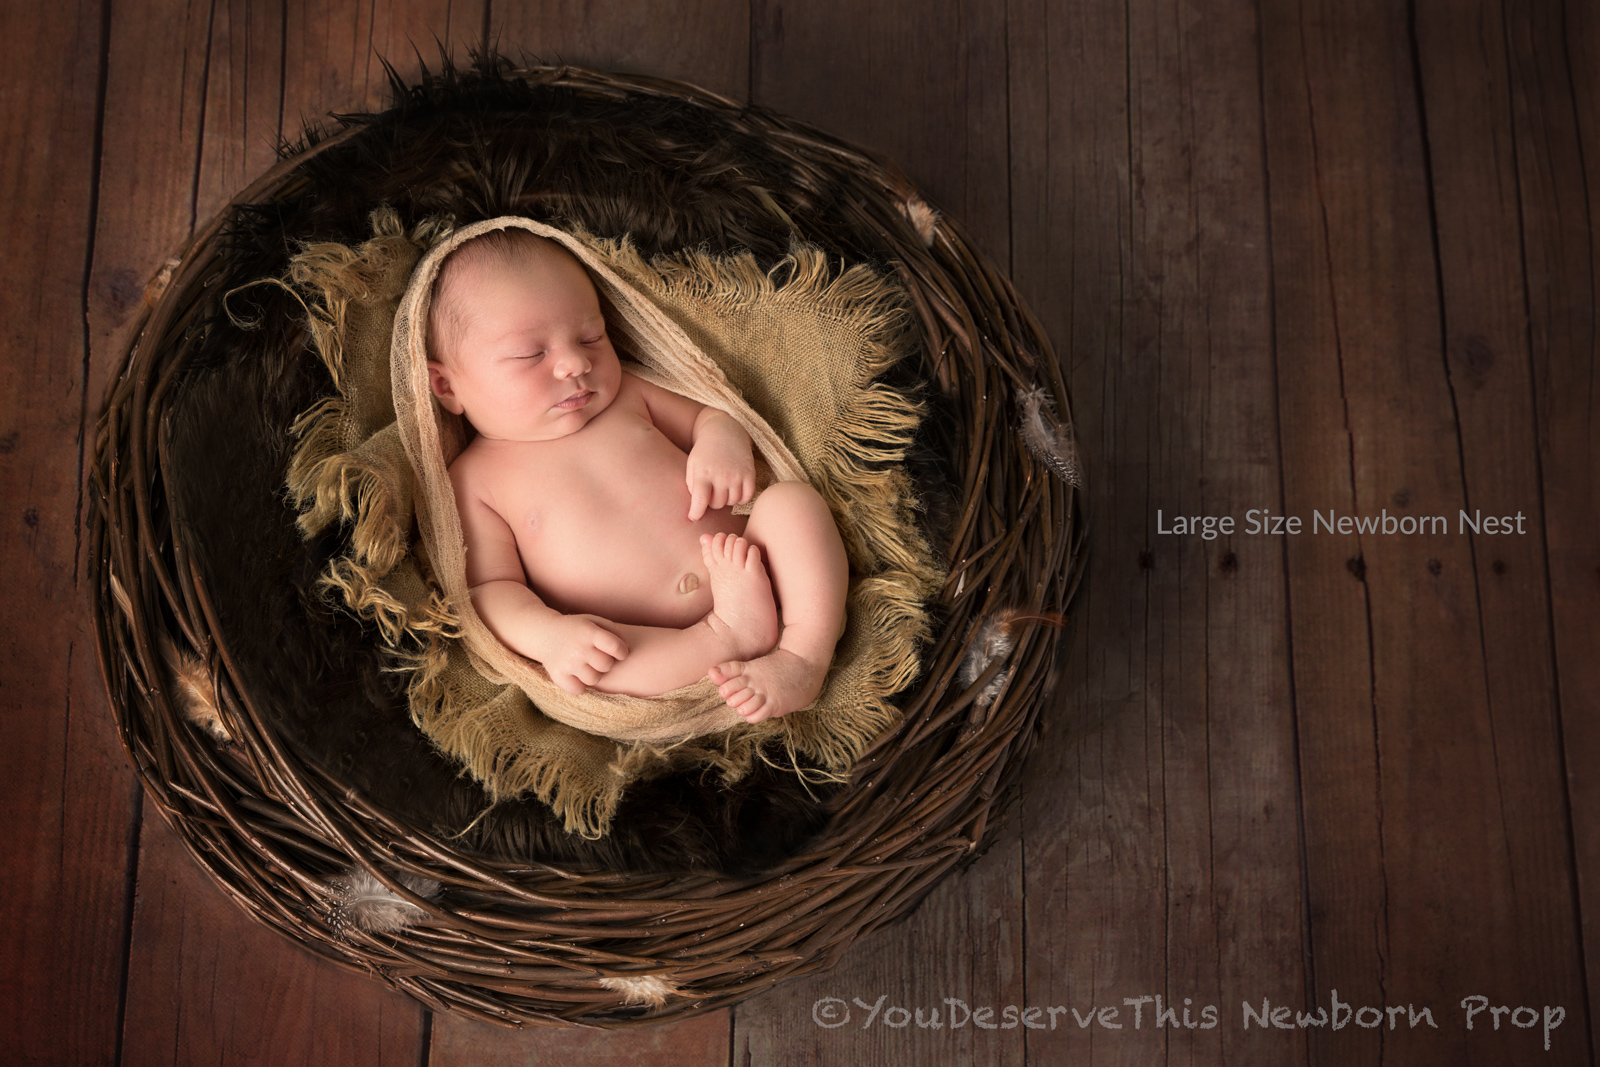 Newborn photographers, Mum's and Dad's all love photographing their newborn babies with our English Willow Nest Props -  Learn More